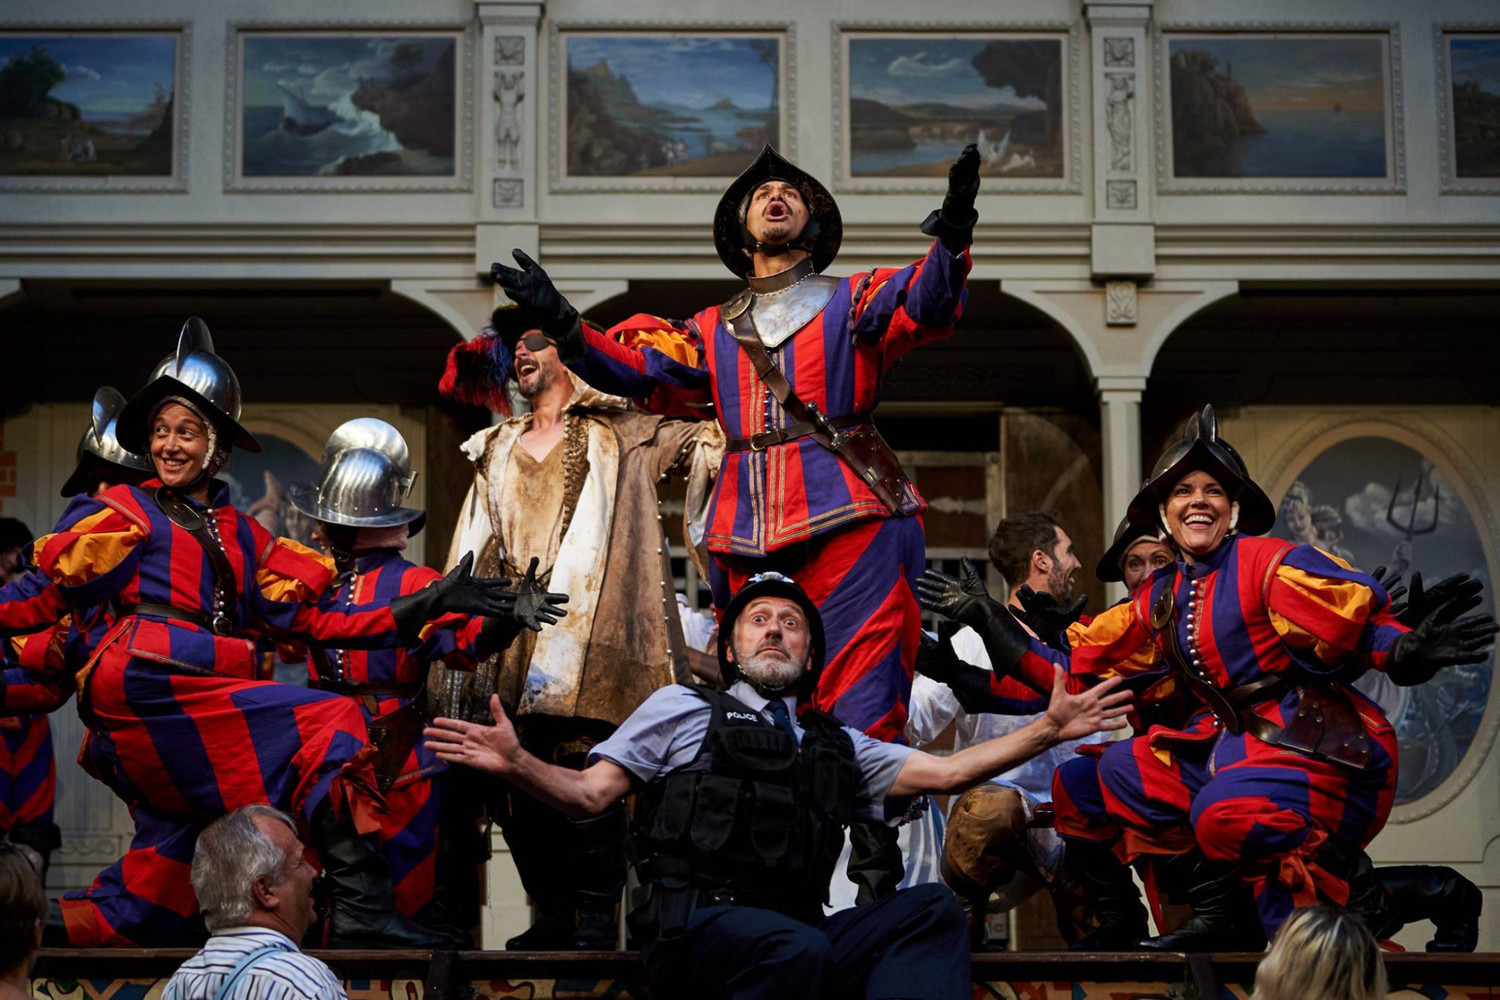 BWW Review: MEASURE FOR MEASURE at Pop-up Globe Auckland